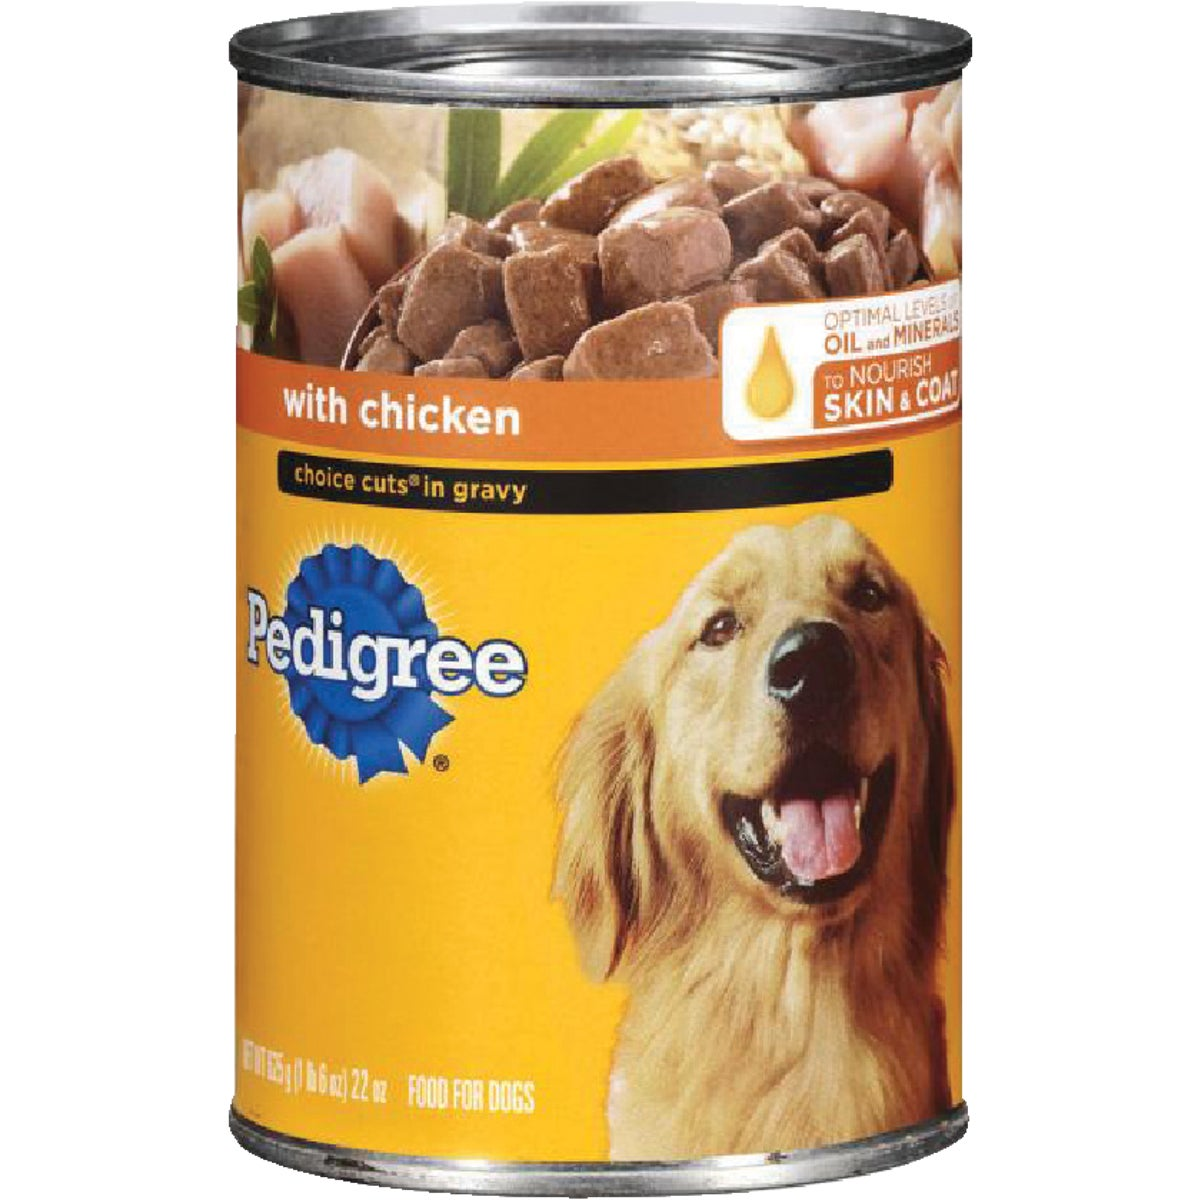 22OZ CHIC CHOIC DOG FOOD - 01570 by Mars Pedigree